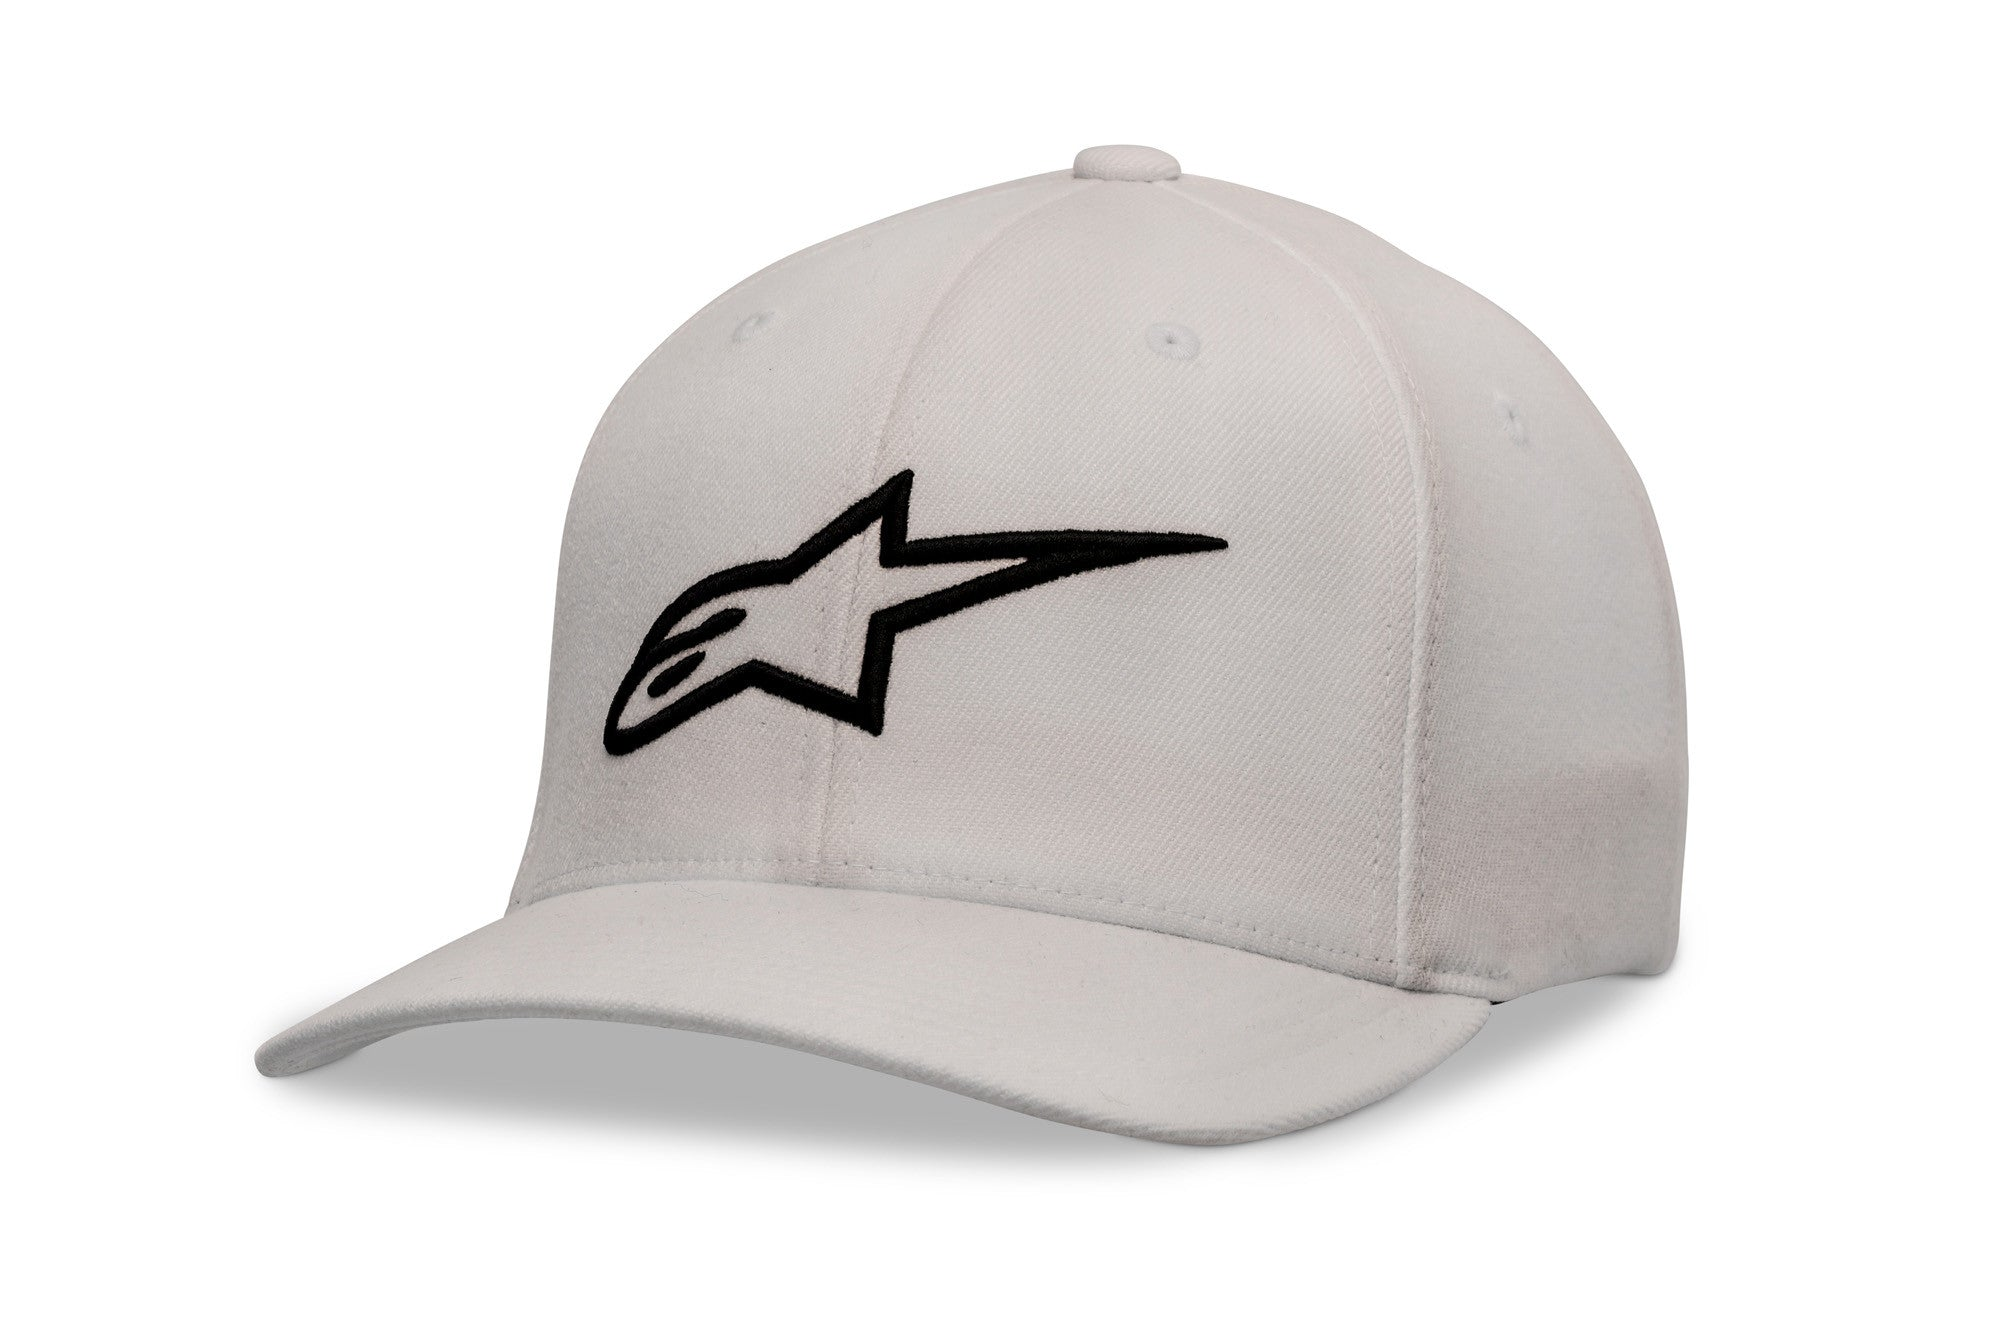 Alpinestars WOMENS AGELESS HAT SILVER/BLACK 1W38-81100-1900